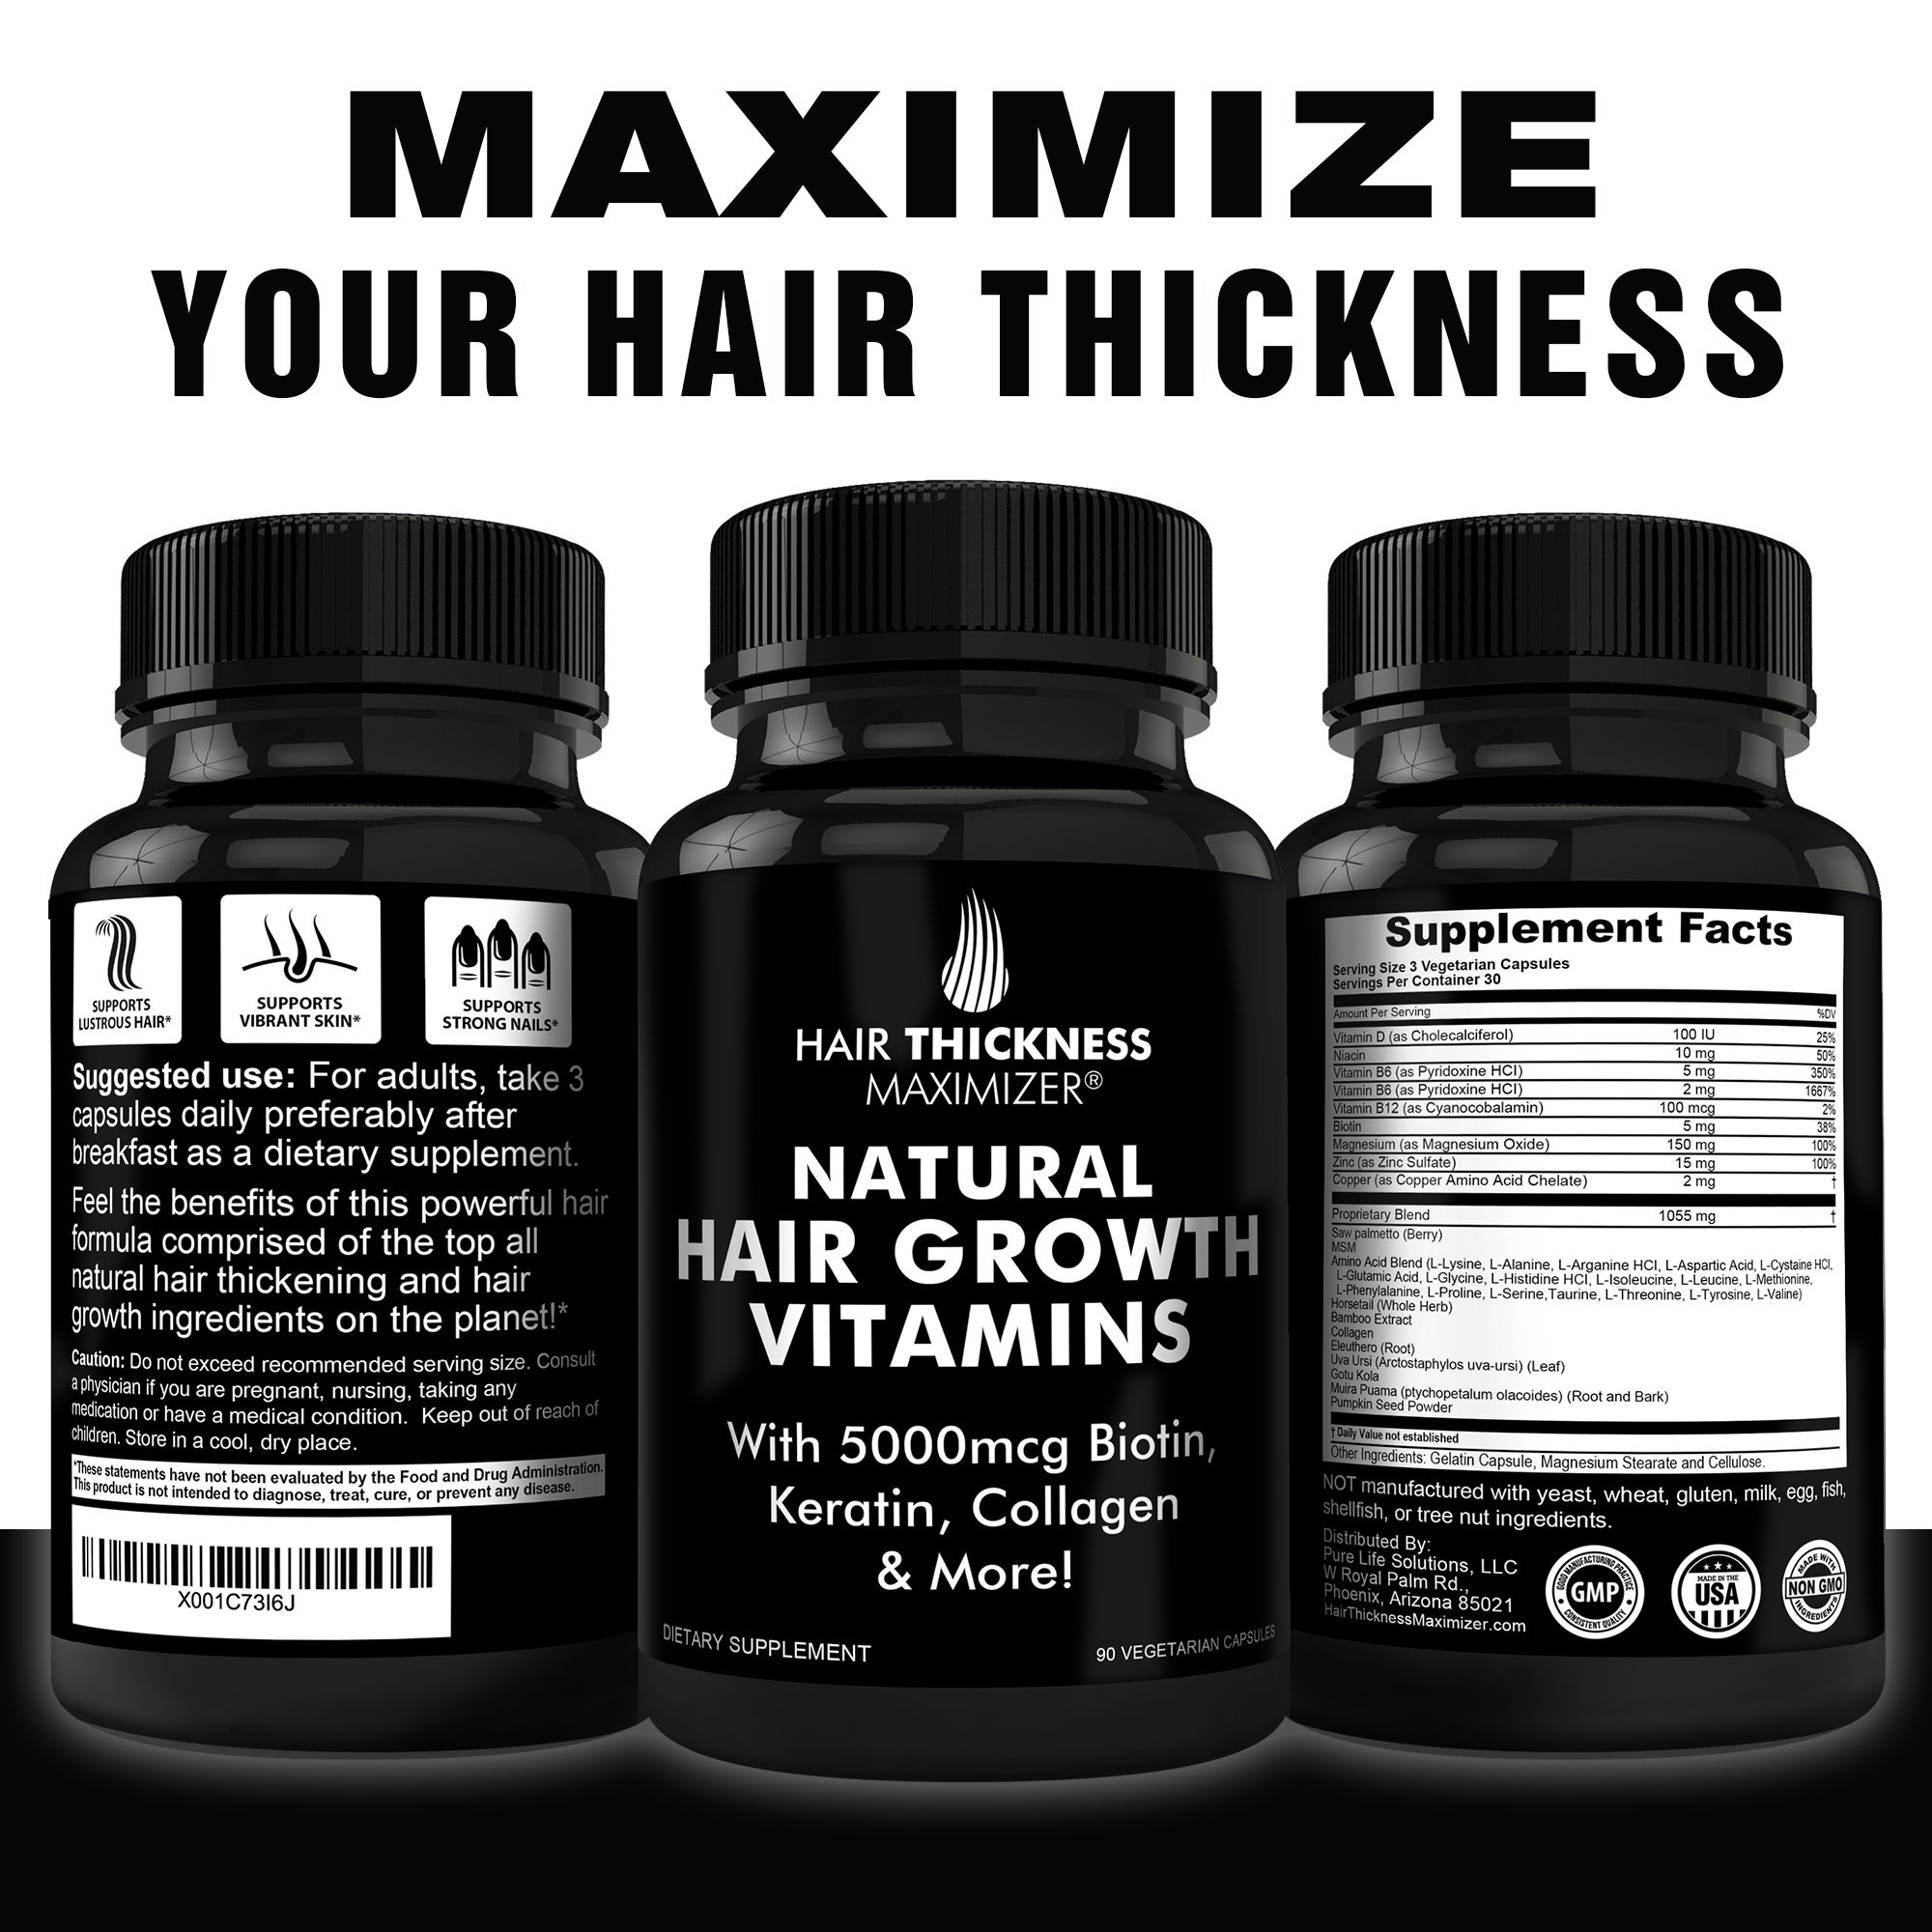 BEST Hair Growth Vitamins GUARANTEED. Stop Hair Loss NOW by Hair Thickness Maximizer. Natural Hair Growth Vitamins for Stronger, Thicker Hair. MADE IN USA. SAFE Vegetarian | With Biotin, Horsetail Ext by Hair Thickness Maximizer (Image #6)